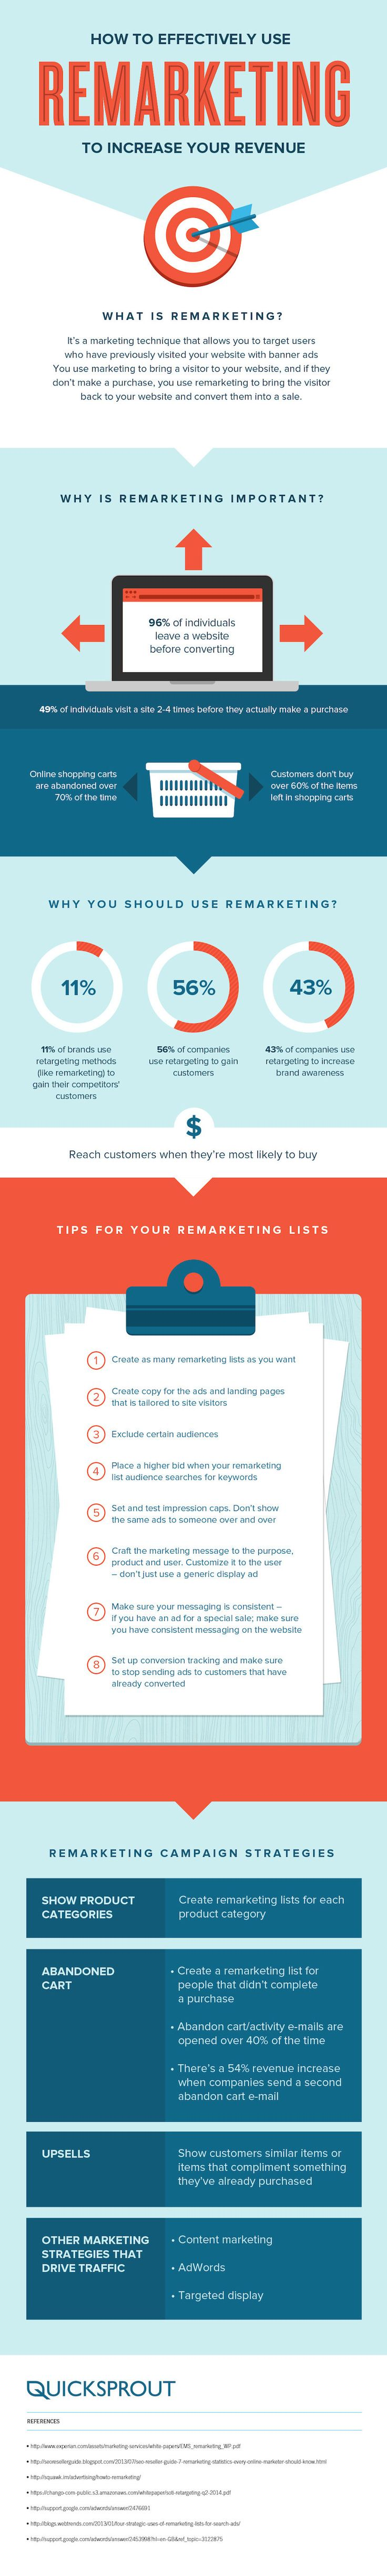 "Infographic: How to Effectively Use Remarketing to Increase Your Revenue. Remarketing is an excellent ""Return Path"" in your Digital Marketing Strategy."